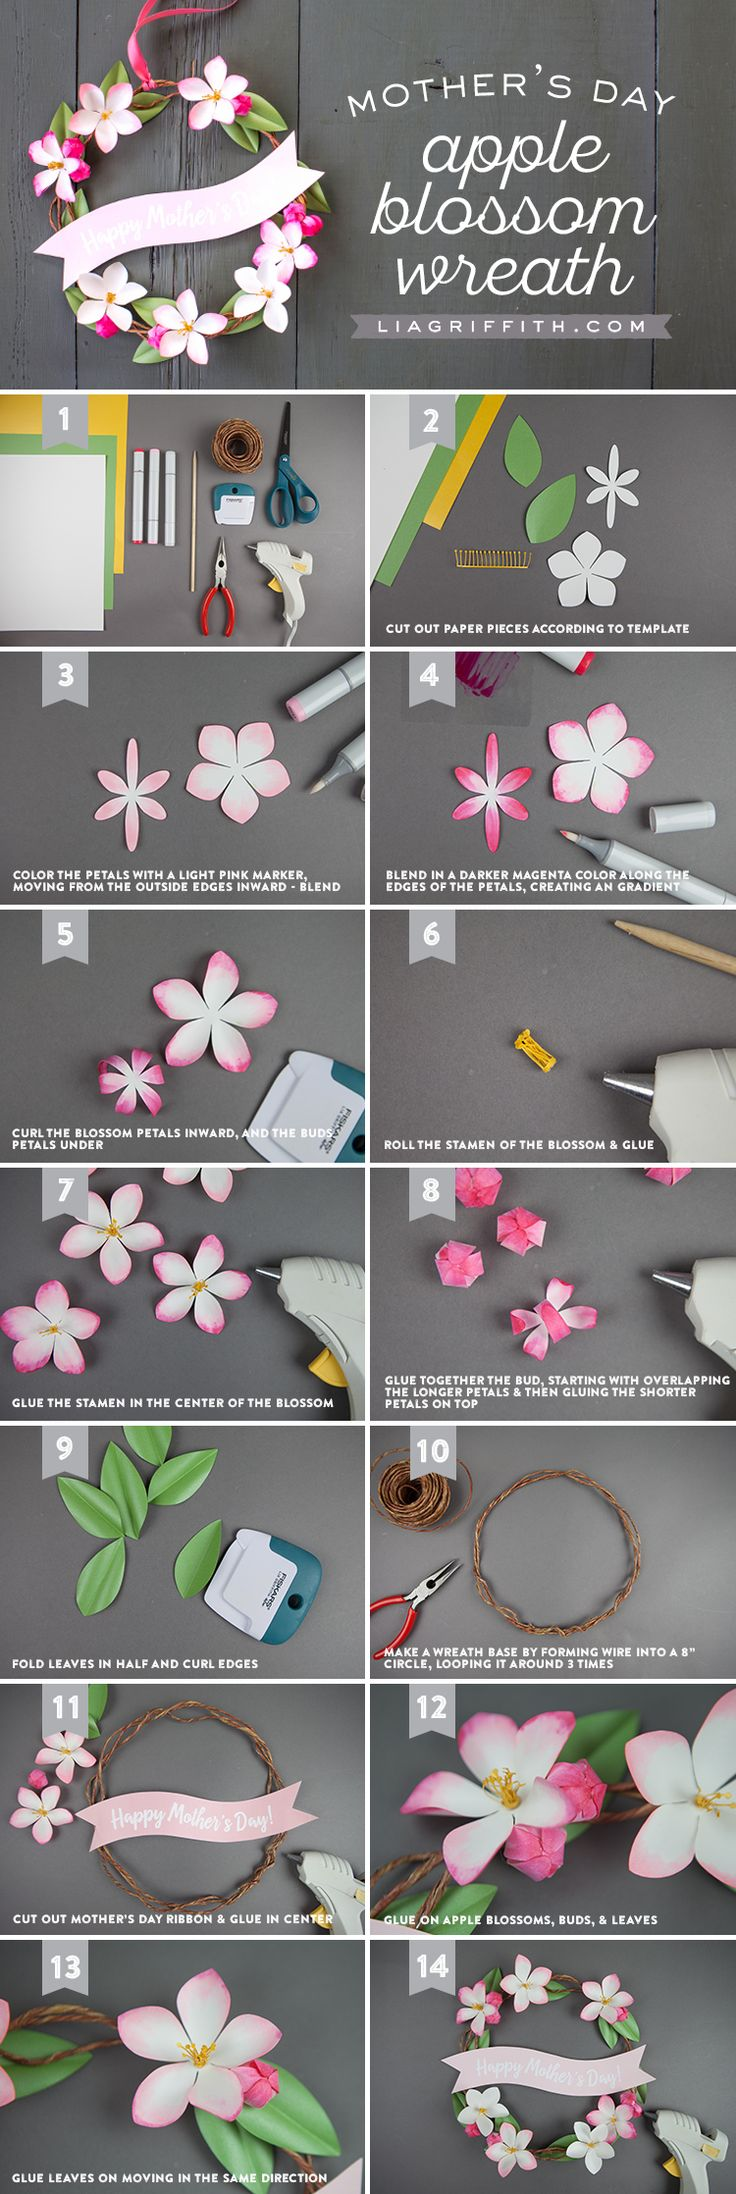 Brighten Her Day With Blossoms  Hang this sweet sentiment on the front or bedroom door to surprise Mom in the morning or after work. Adorned in mini paper apple blossoms, this Mother's Day wreath is easier than you think. Find out how to make your own here https://liagriffith.com/paper-apple-blossom-mothers-day-wreath * * * #mothersday #mom #moms #mothersdaygift #mothersdaygifts #giftsforher #giftsformom #wreath #paper #papercut #paperlove #paperflower #paperflowers #blossom #blossoming #diy…